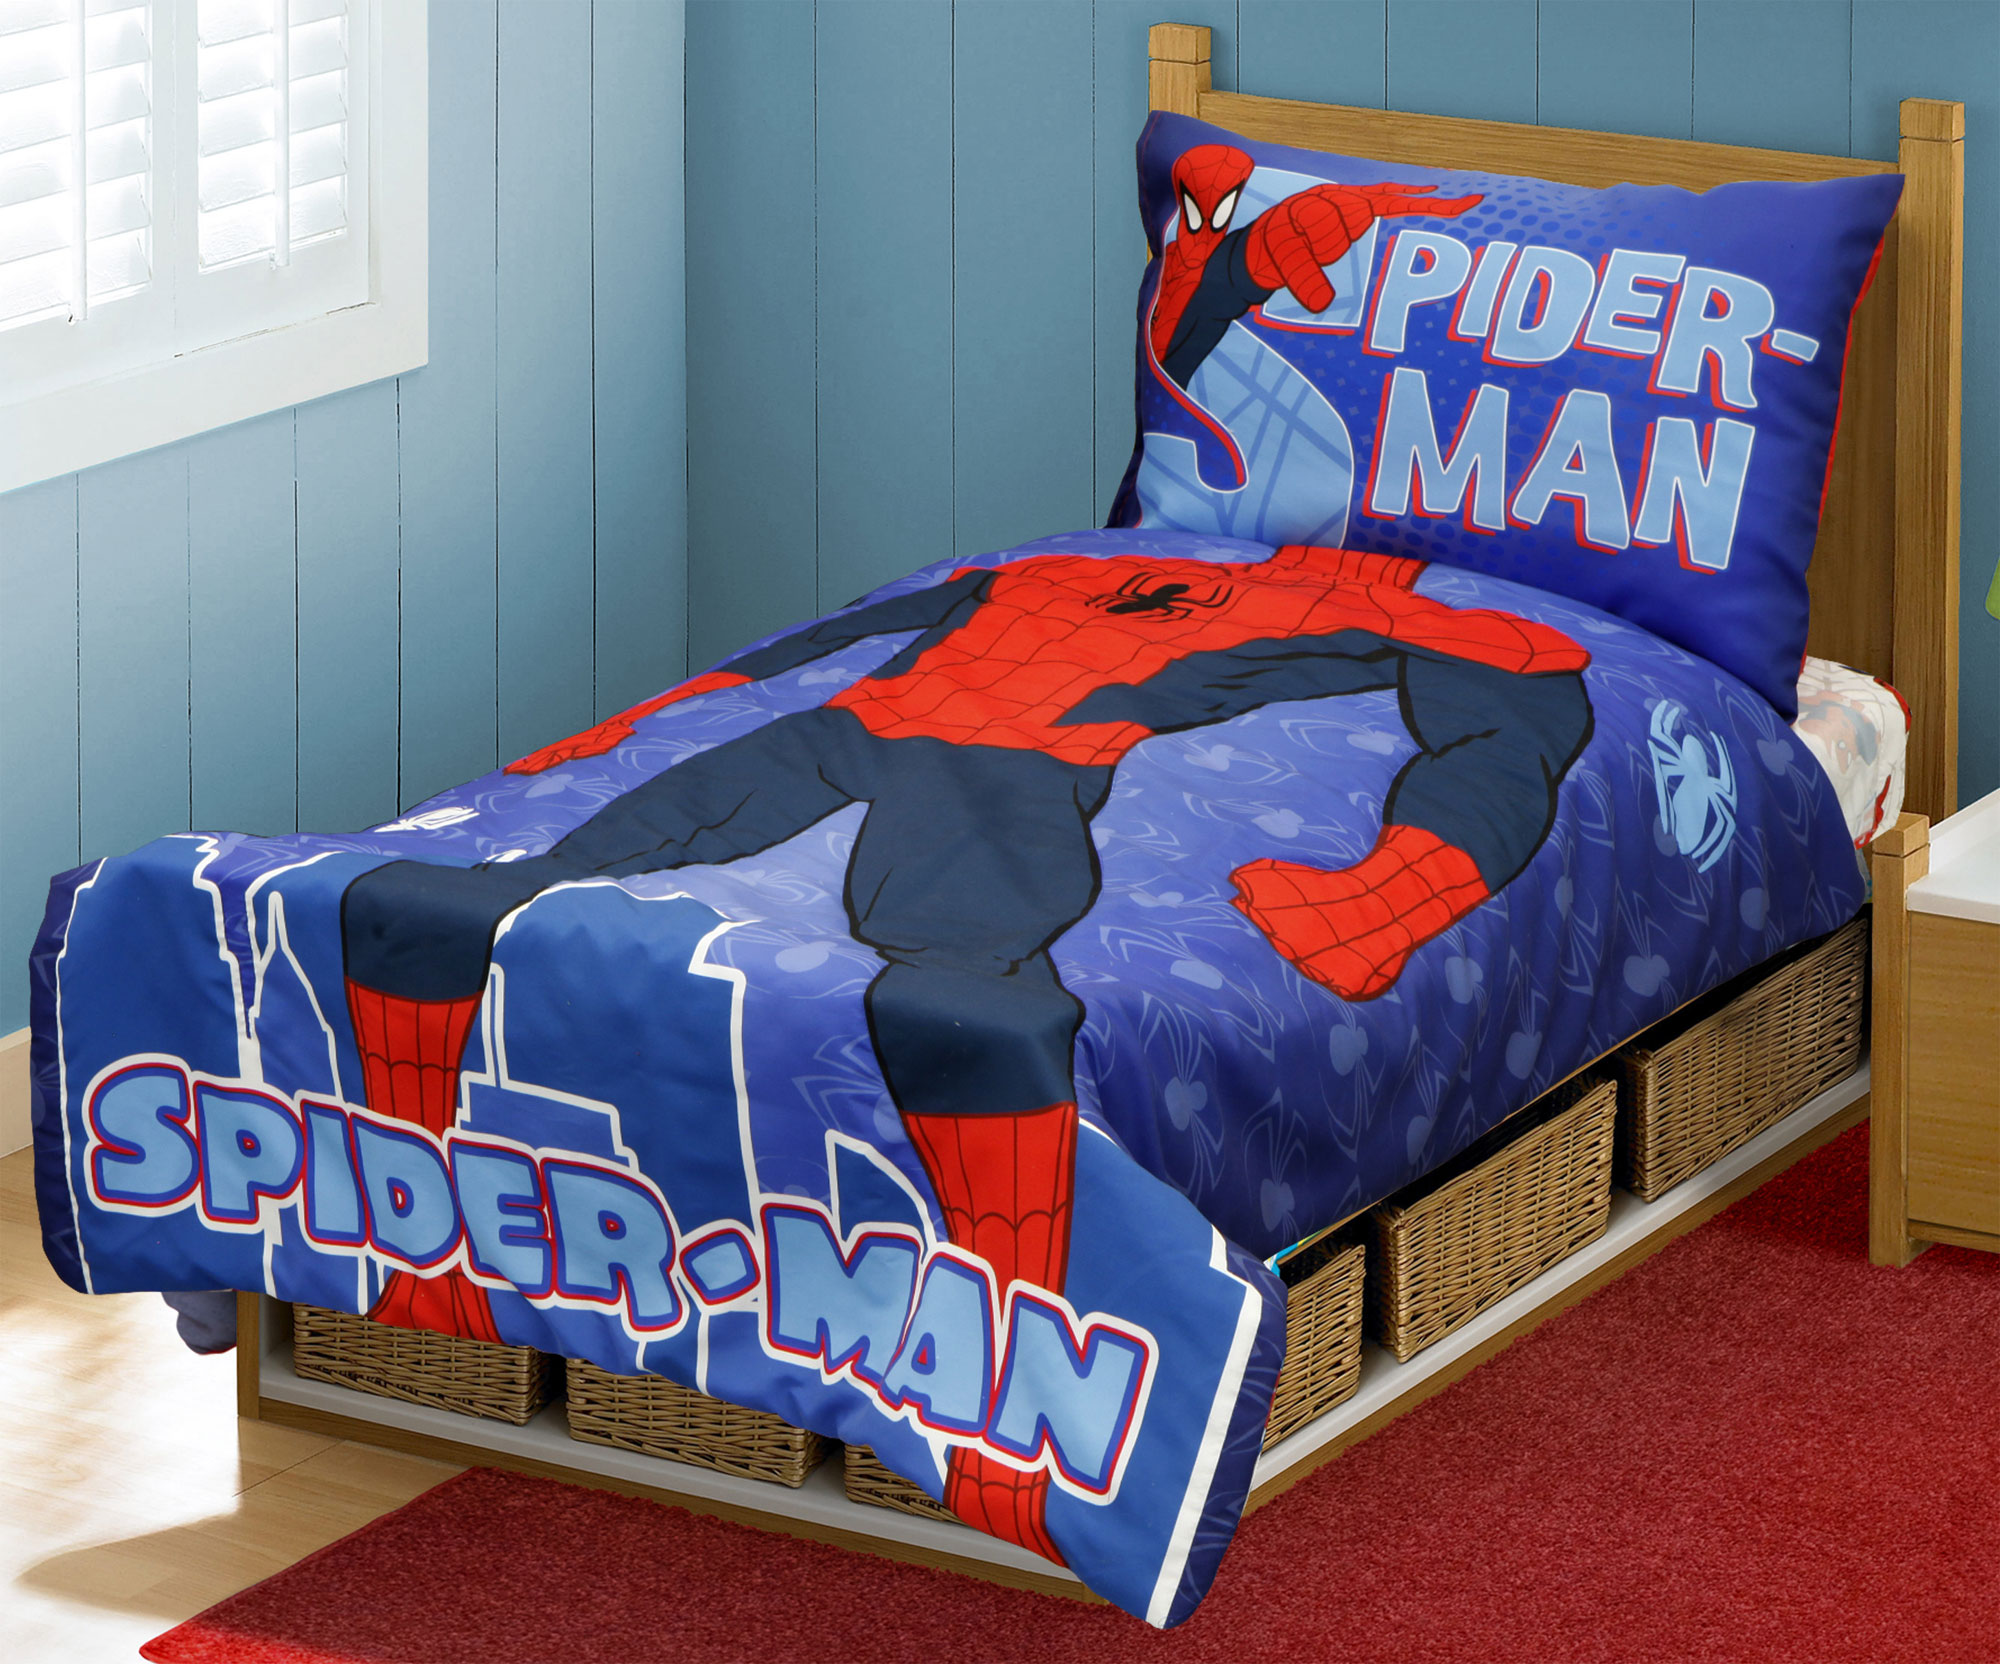 set man wall vie bedding with sets room design curtains decorating frozen stickers ideas amazon decor image scheme is what walmart furniture single loft superman themeimage color argos box of blackout baby decals toddler bedroom duvet spiderman and in spider cover